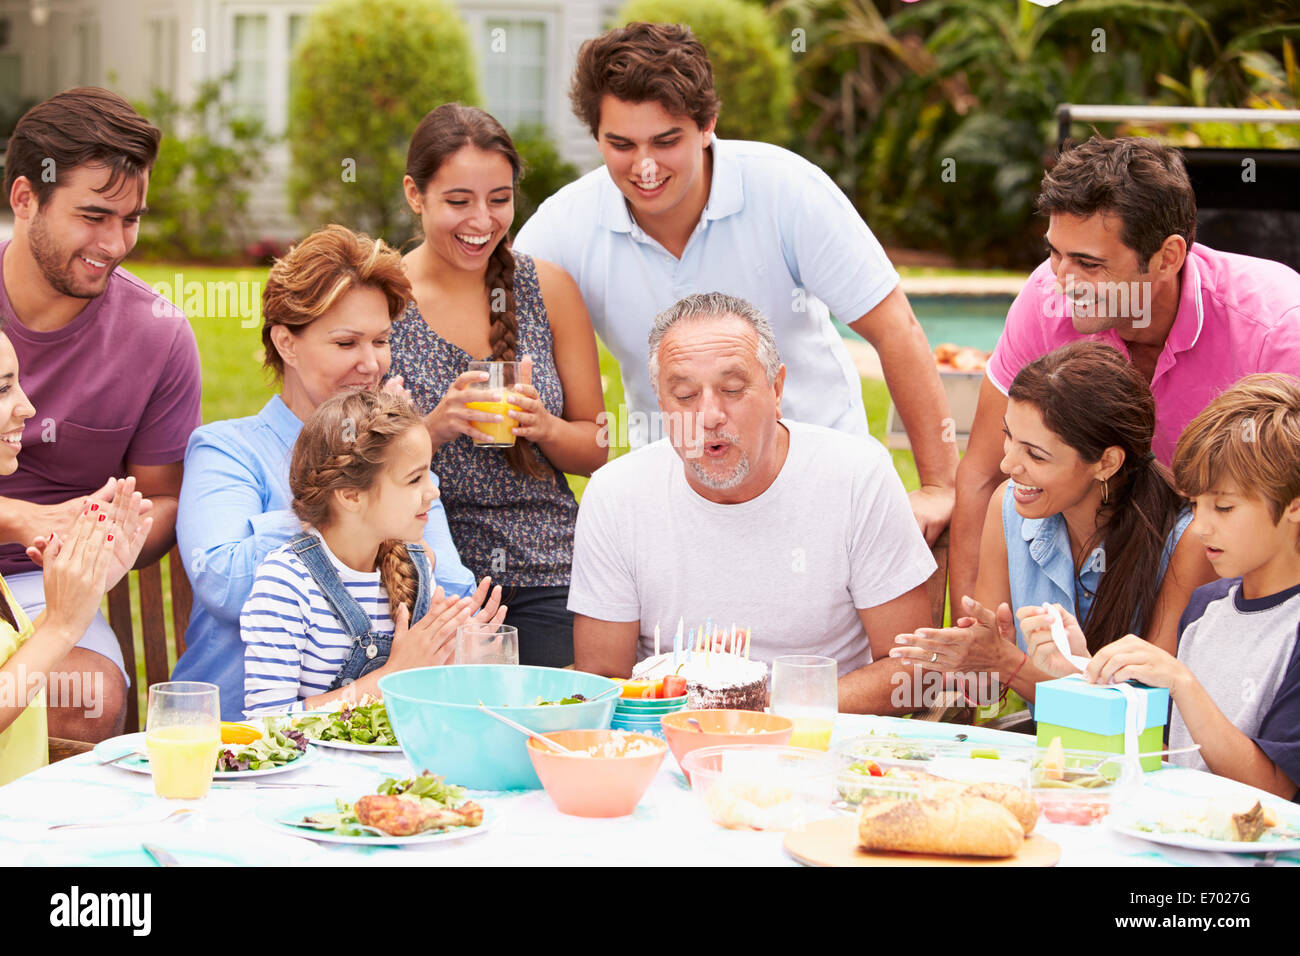 Multi Generation Family Celebrating Birthday In Garden - Stock Image